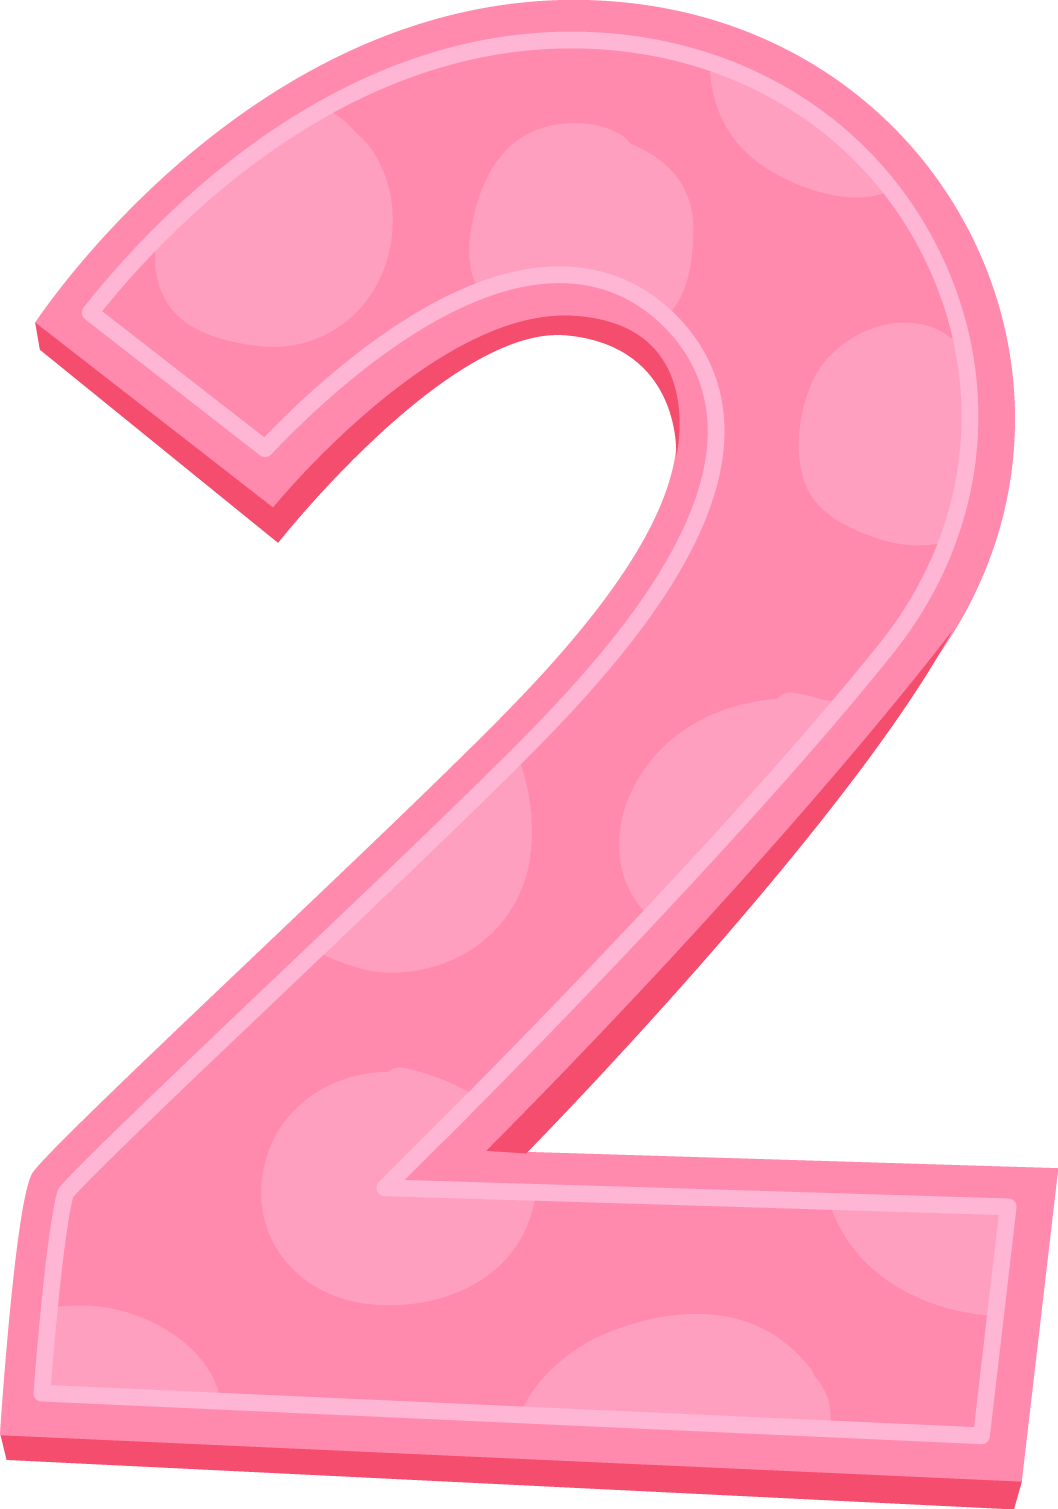 Number 2 birthday png. Collection of pink